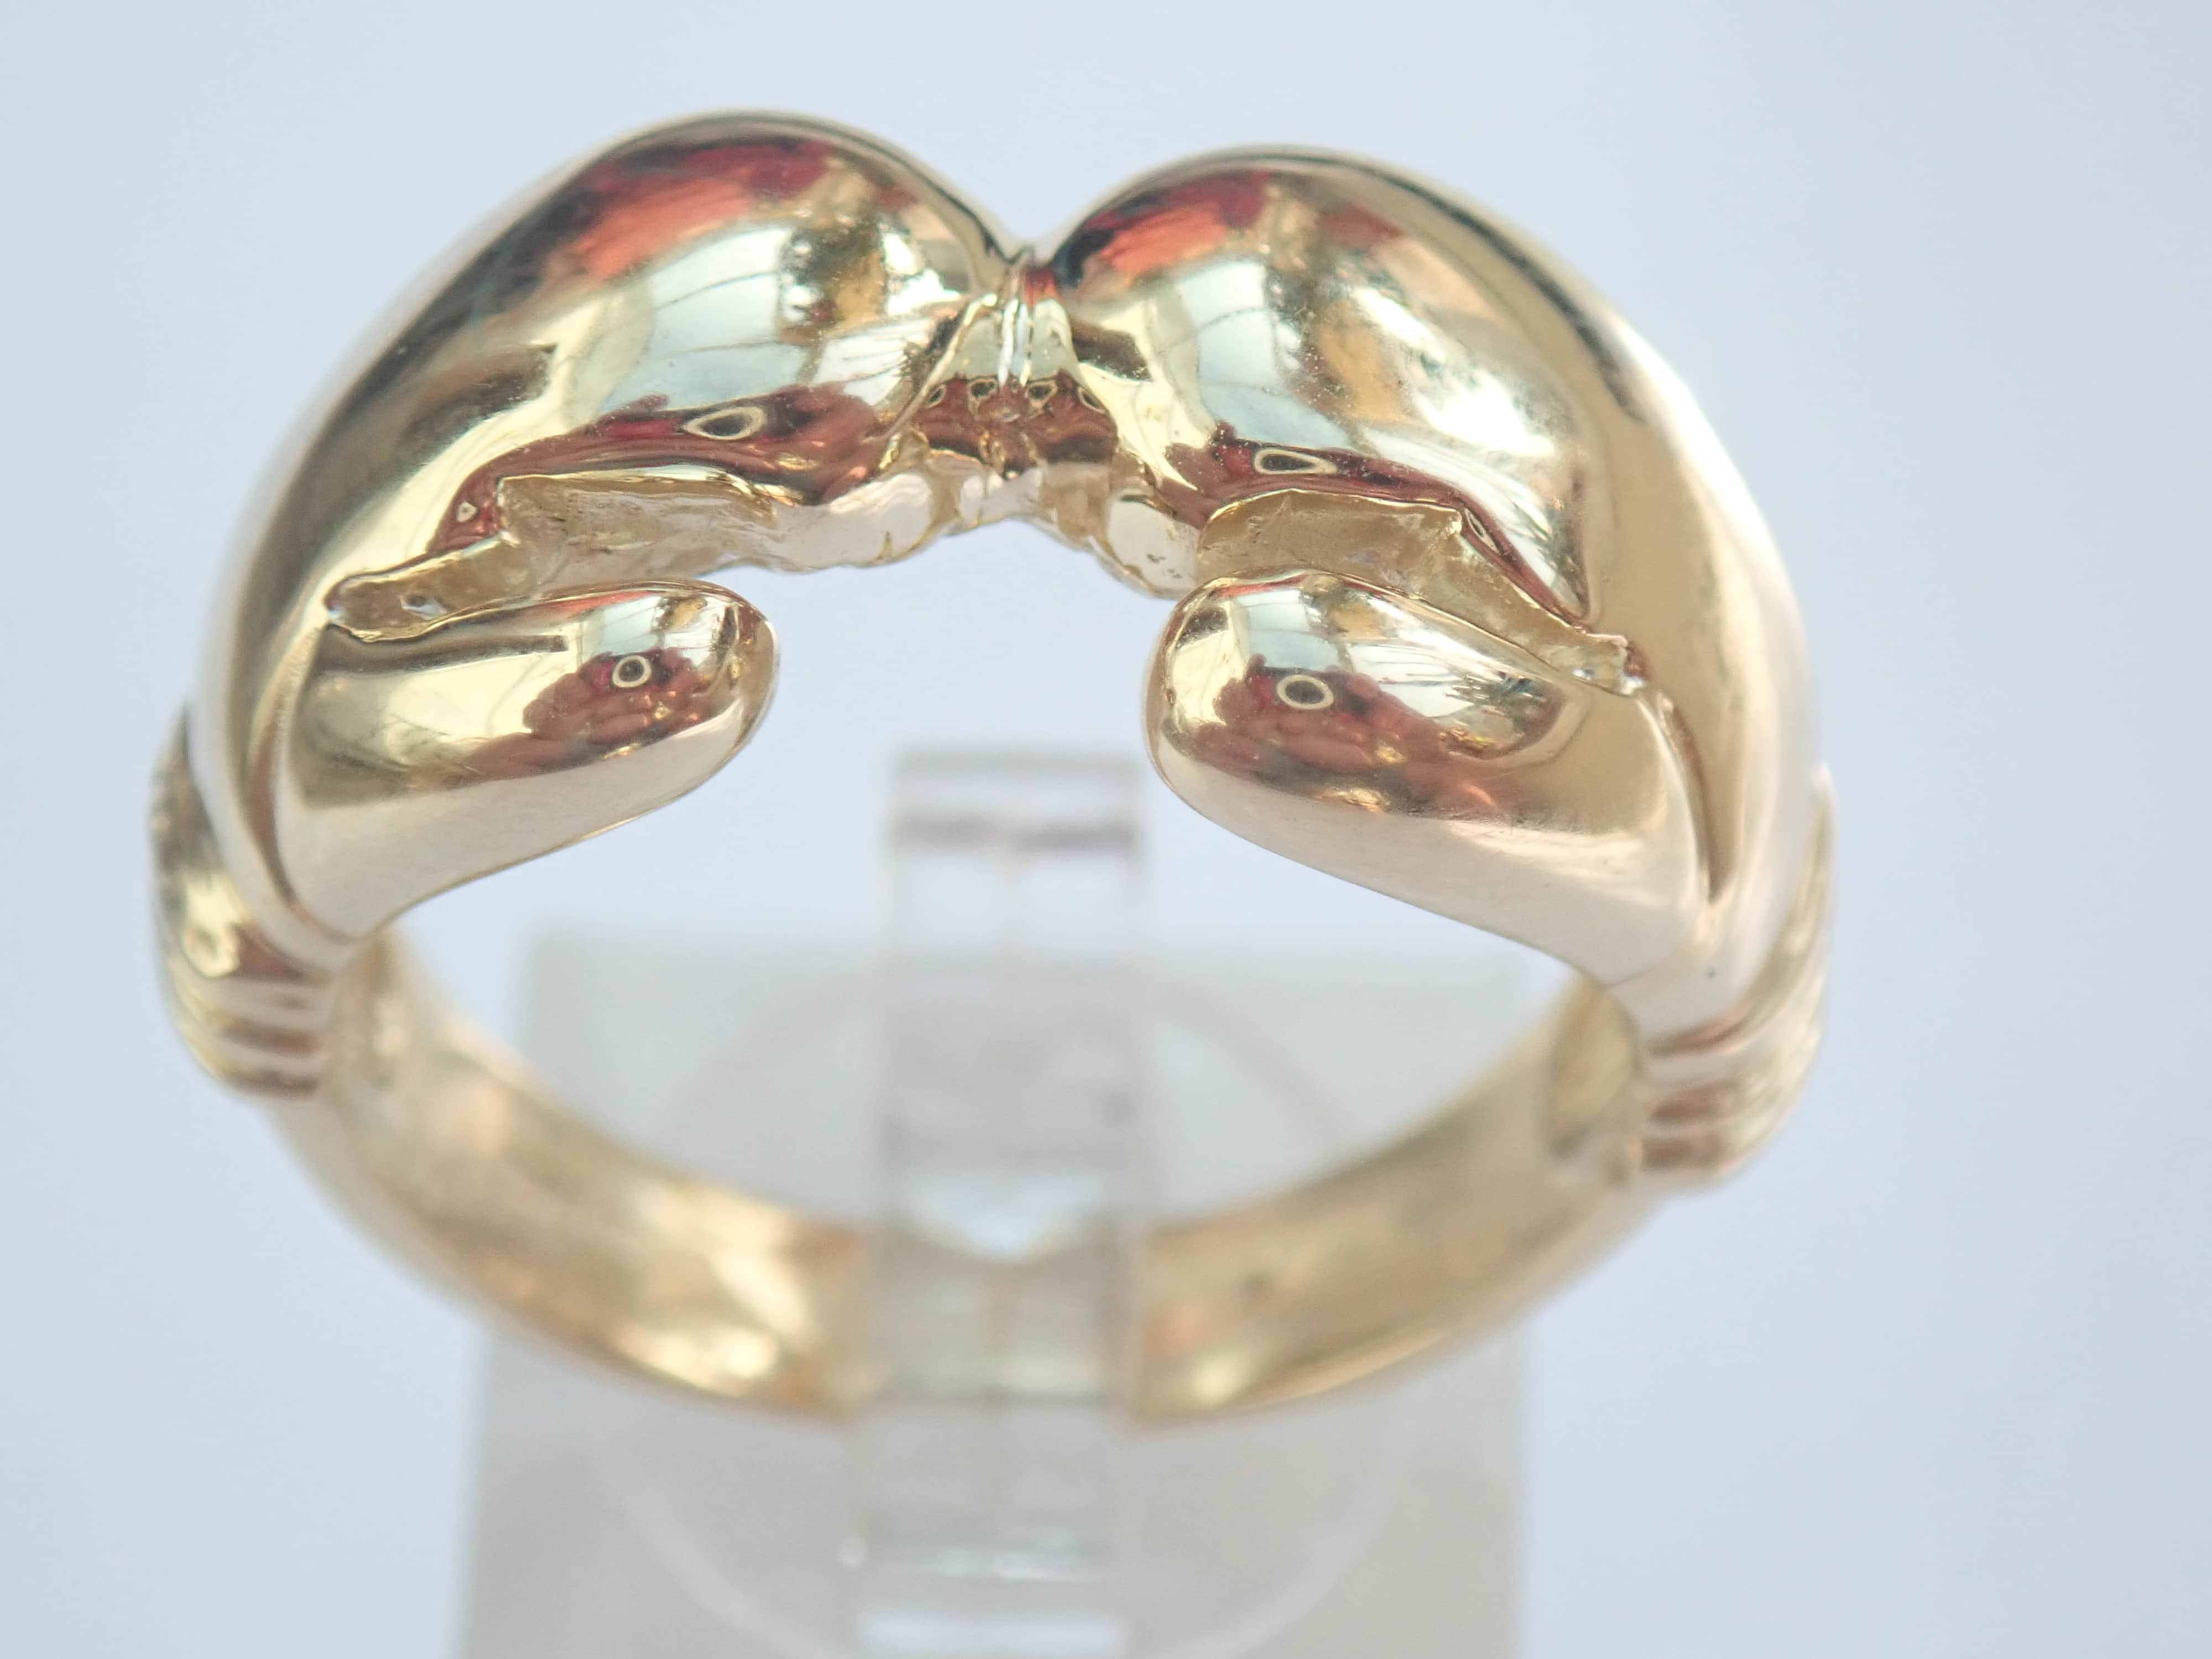 AZZ00506 - 375 Solid 9ct Yellow Gold Boxing Glove Ring Size X 16.6 gms #395